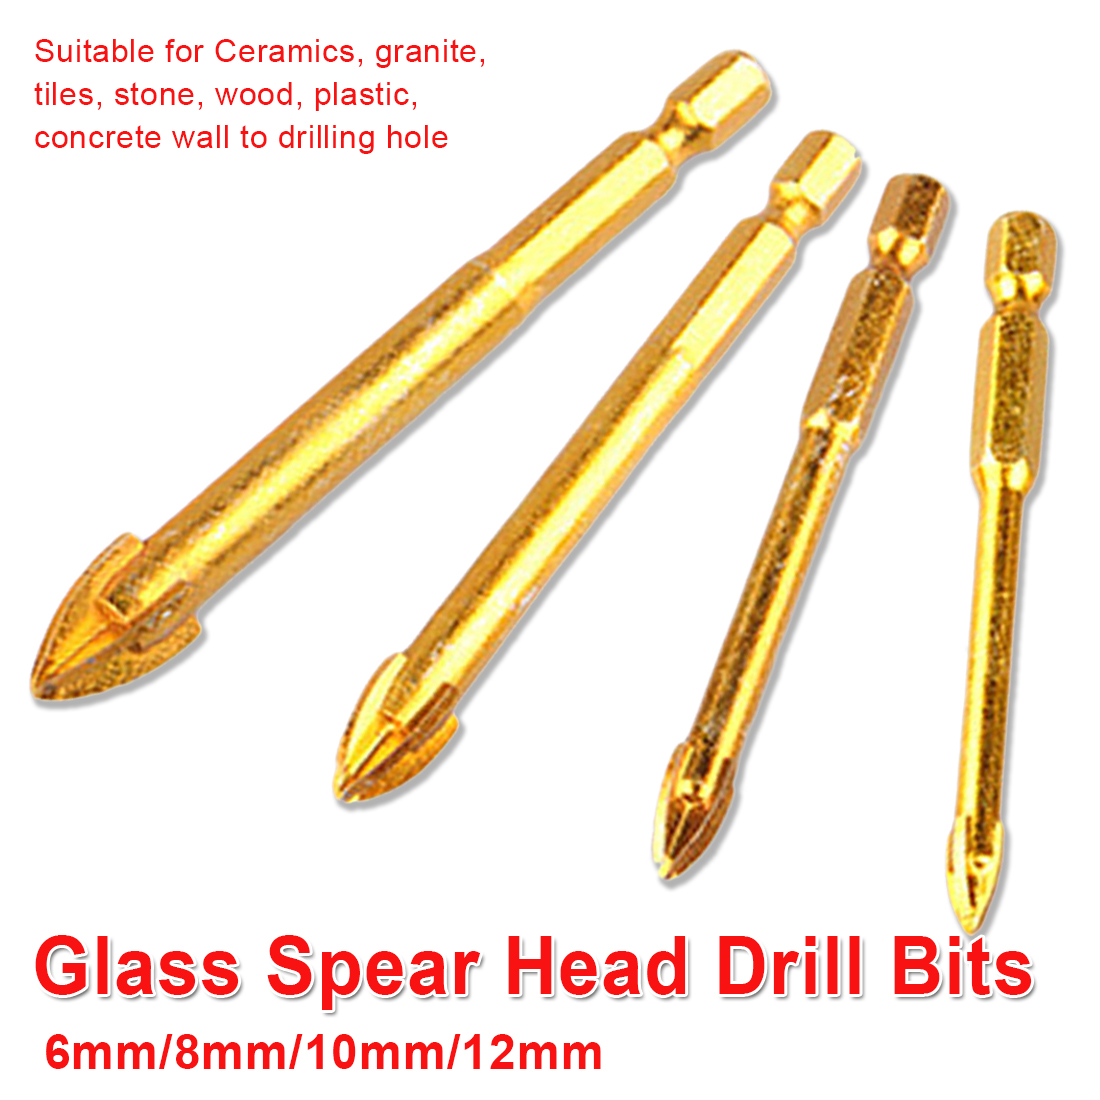 6mm/8mm/10mm/12mm Tungsten Carbide Glass Drill Bit Alloy Carbide Point With 4 Cutting Edge Tile Glass Cross Spear Head Drill Bit